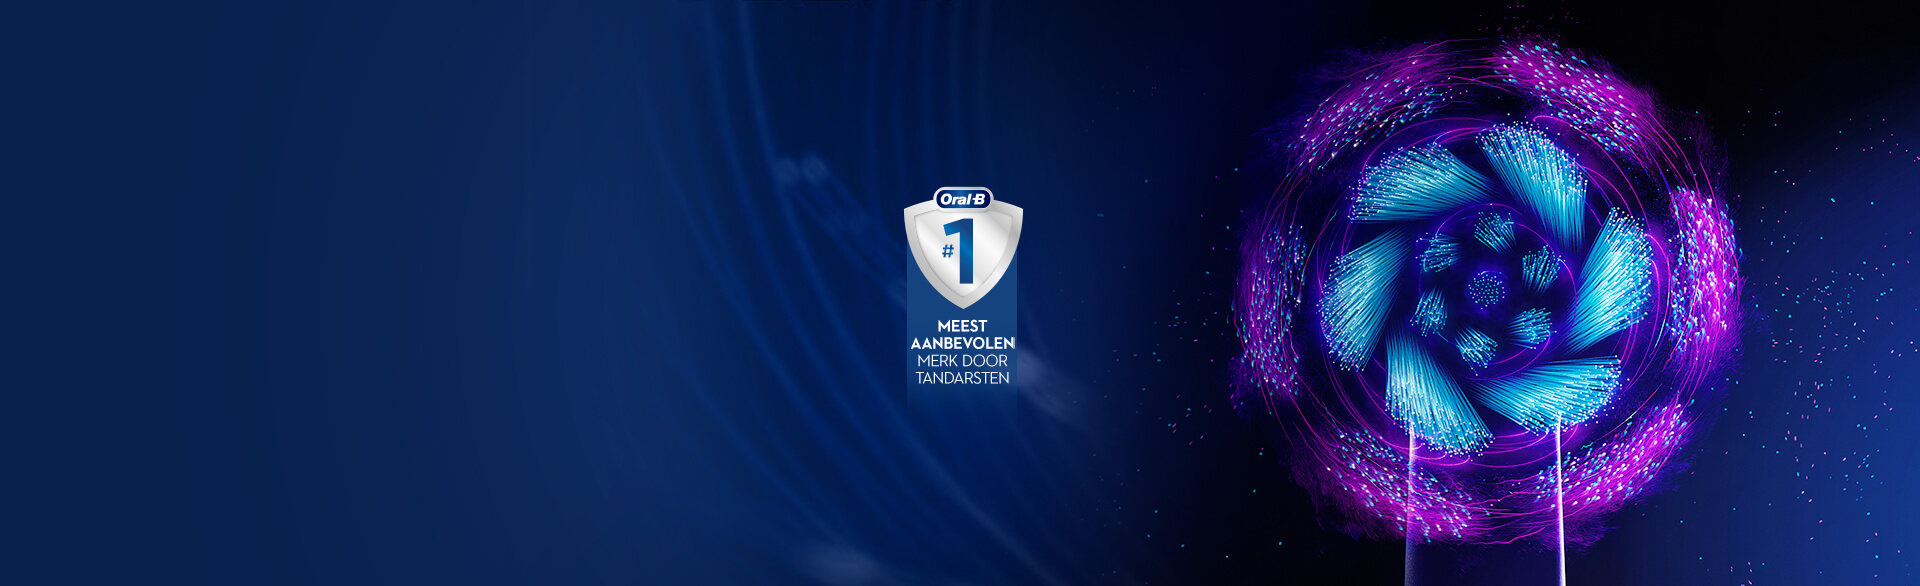 homepage banner oral b